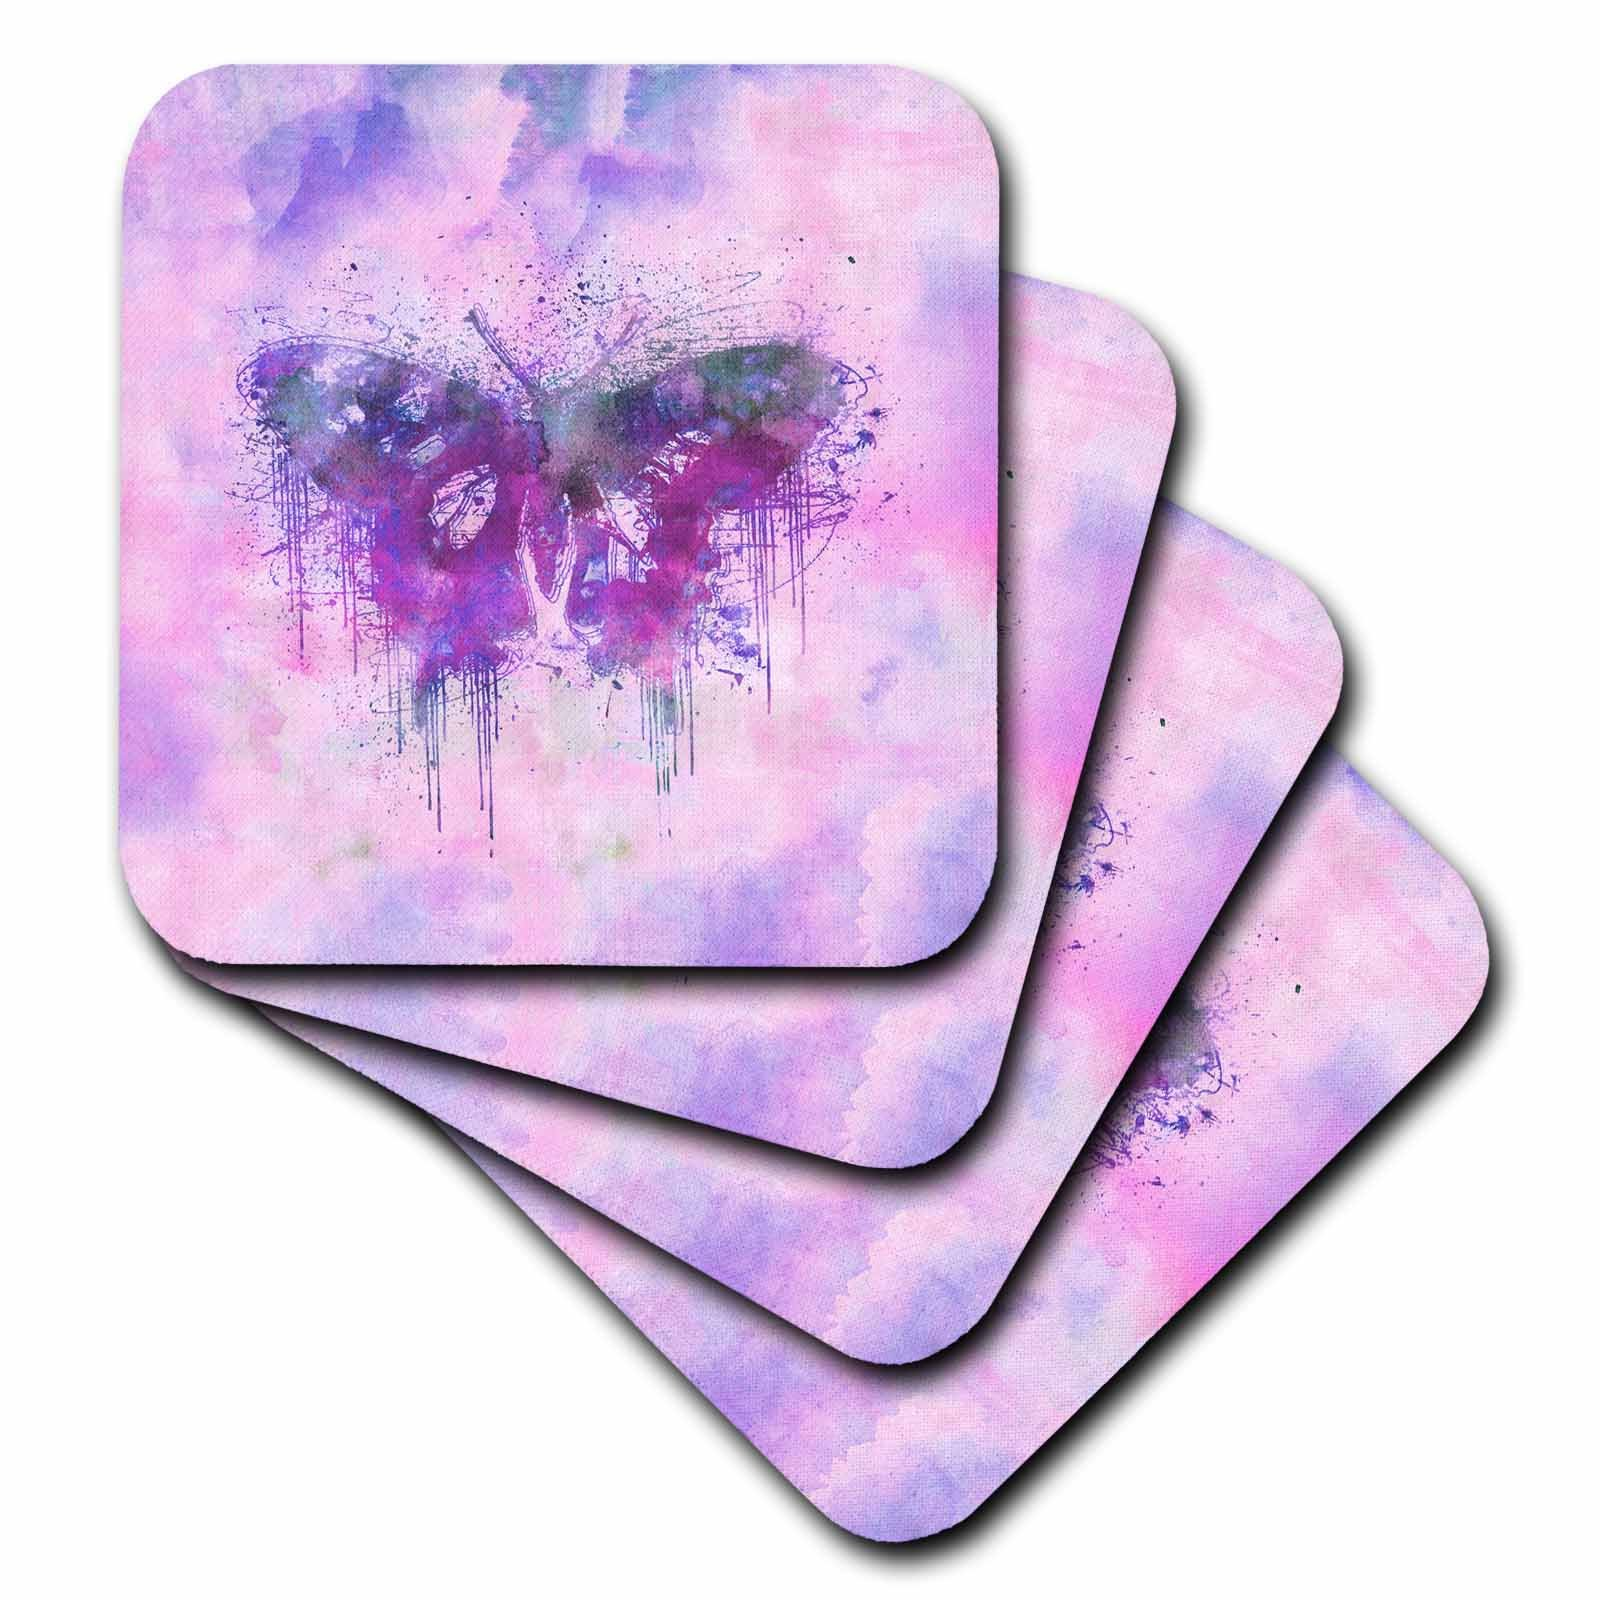 3dRose Andrea Haase Animals Illustration - Artsy Butterfly Illustration In Pink And Purple - set of 4 Coasters - Soft (cst_271199_1)